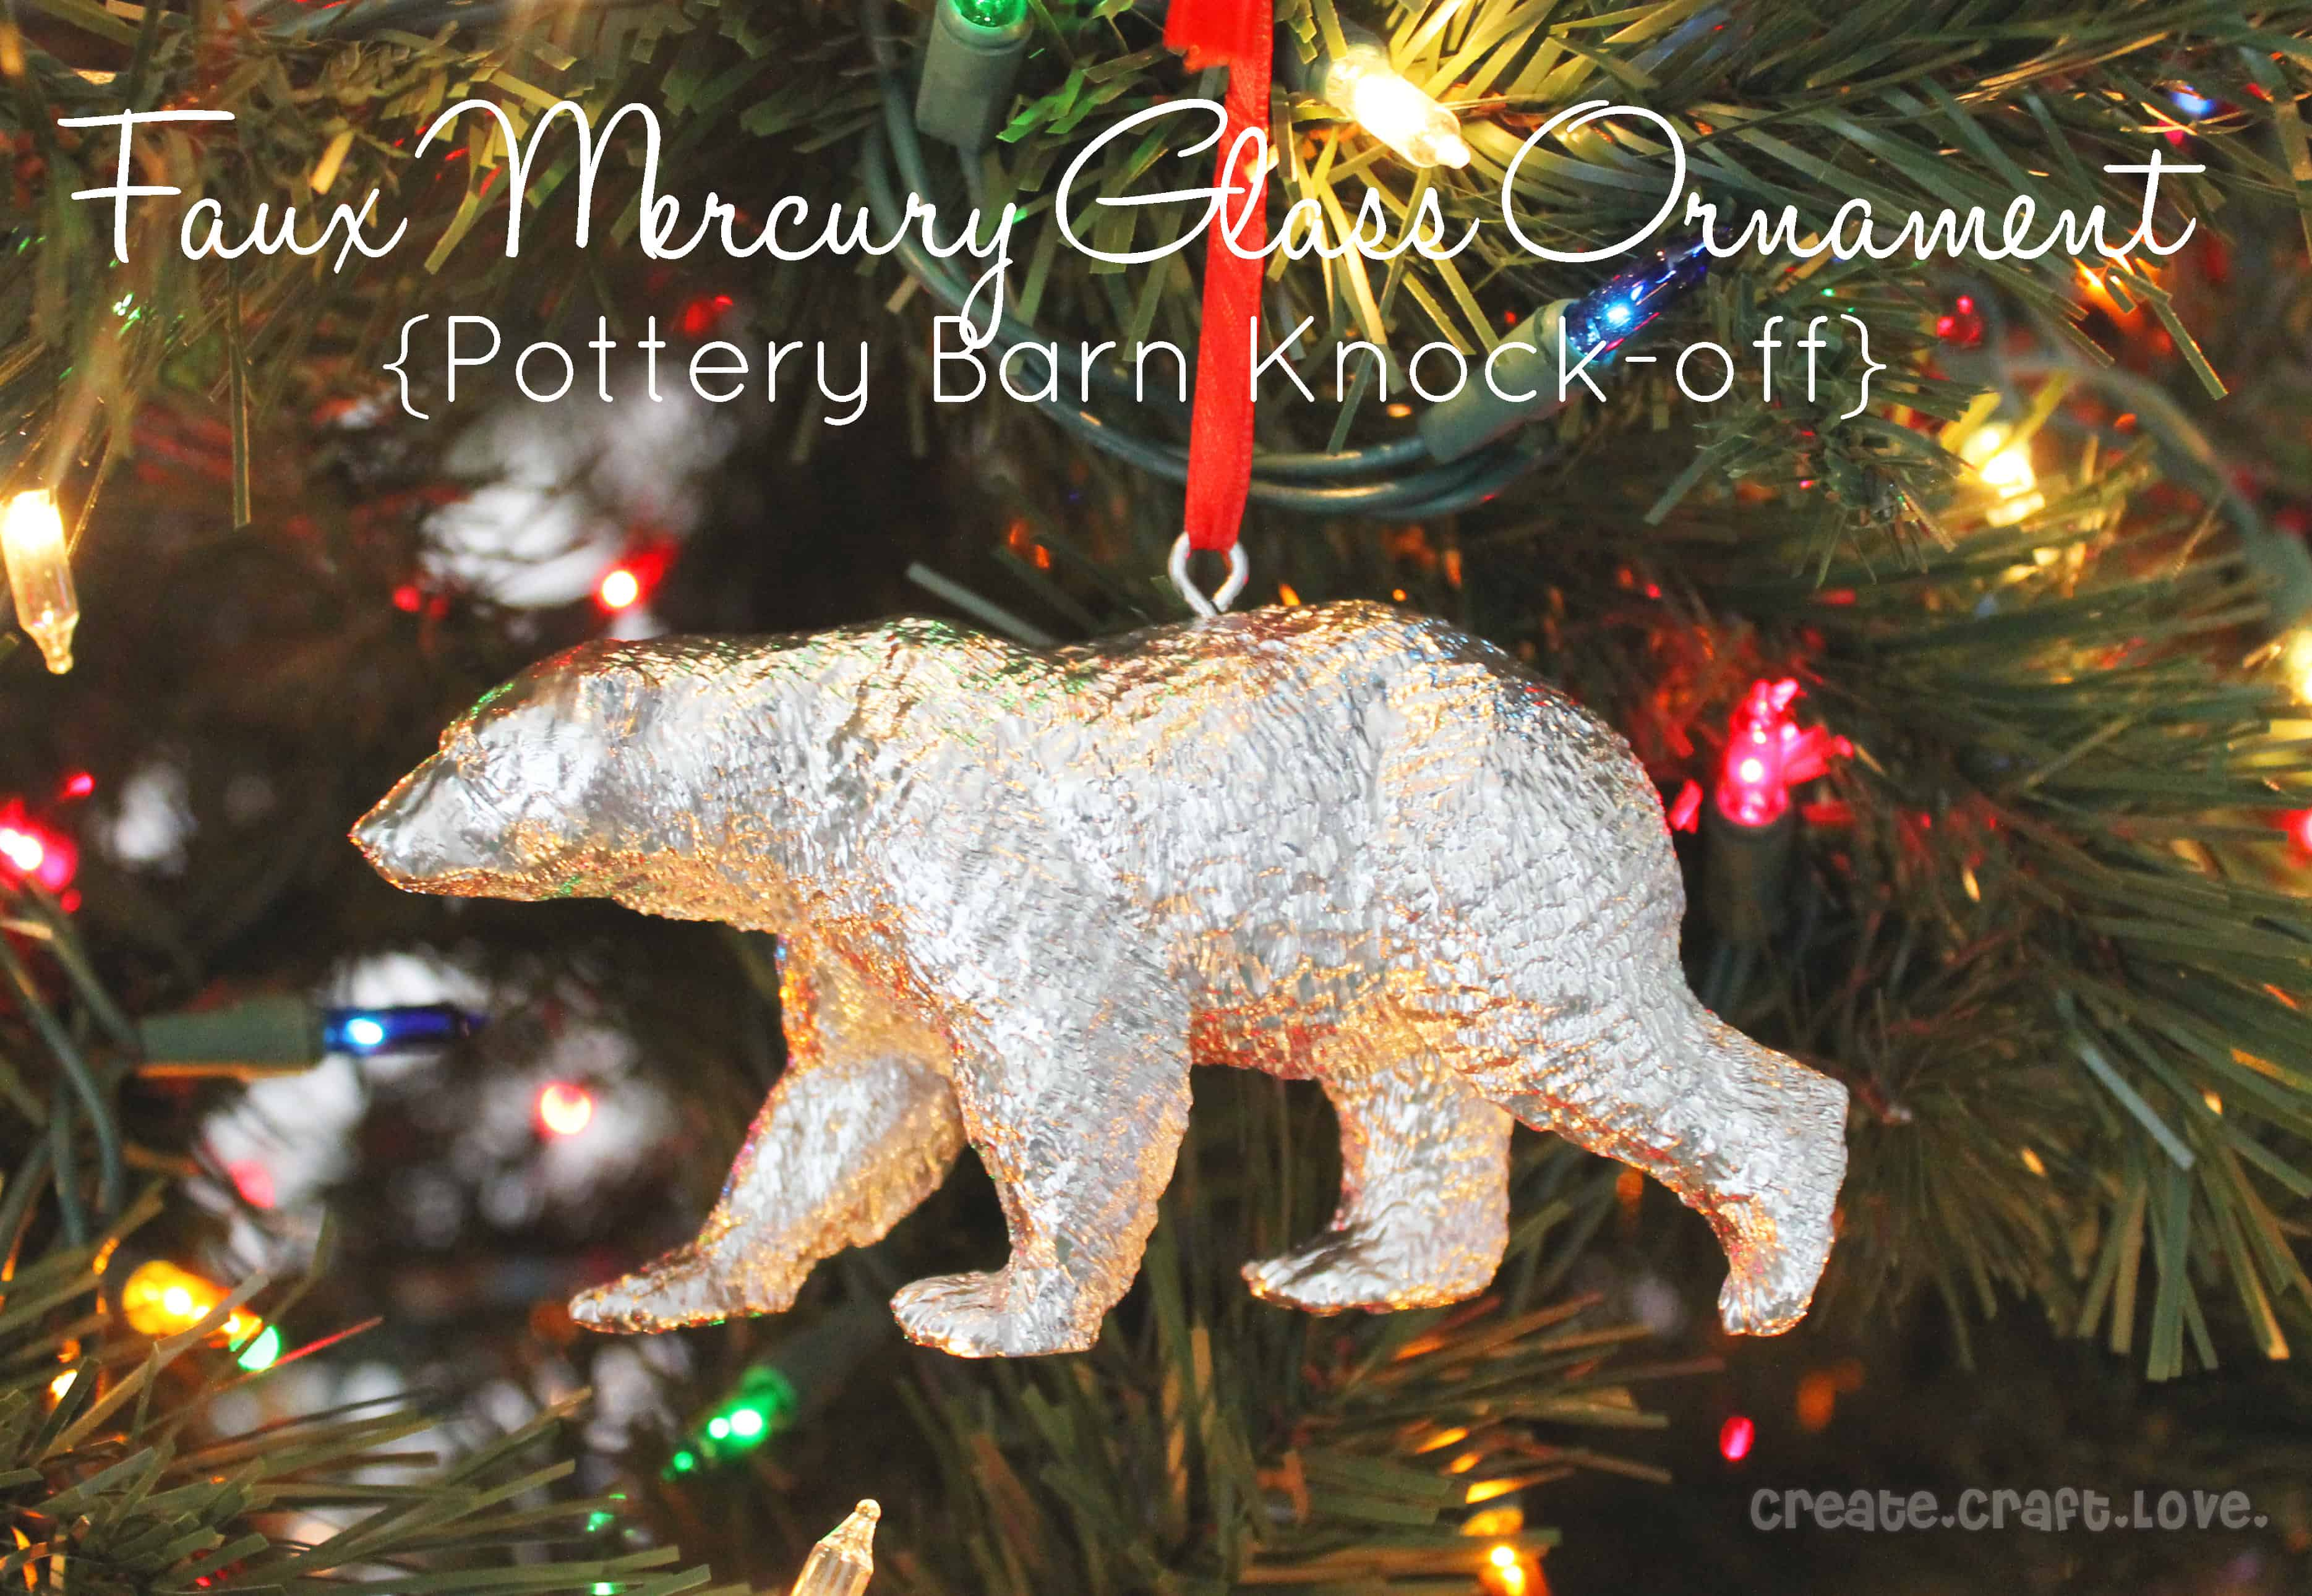 Pottery barn christmas ornaments - Pottery Barn Christmas Ornaments 40